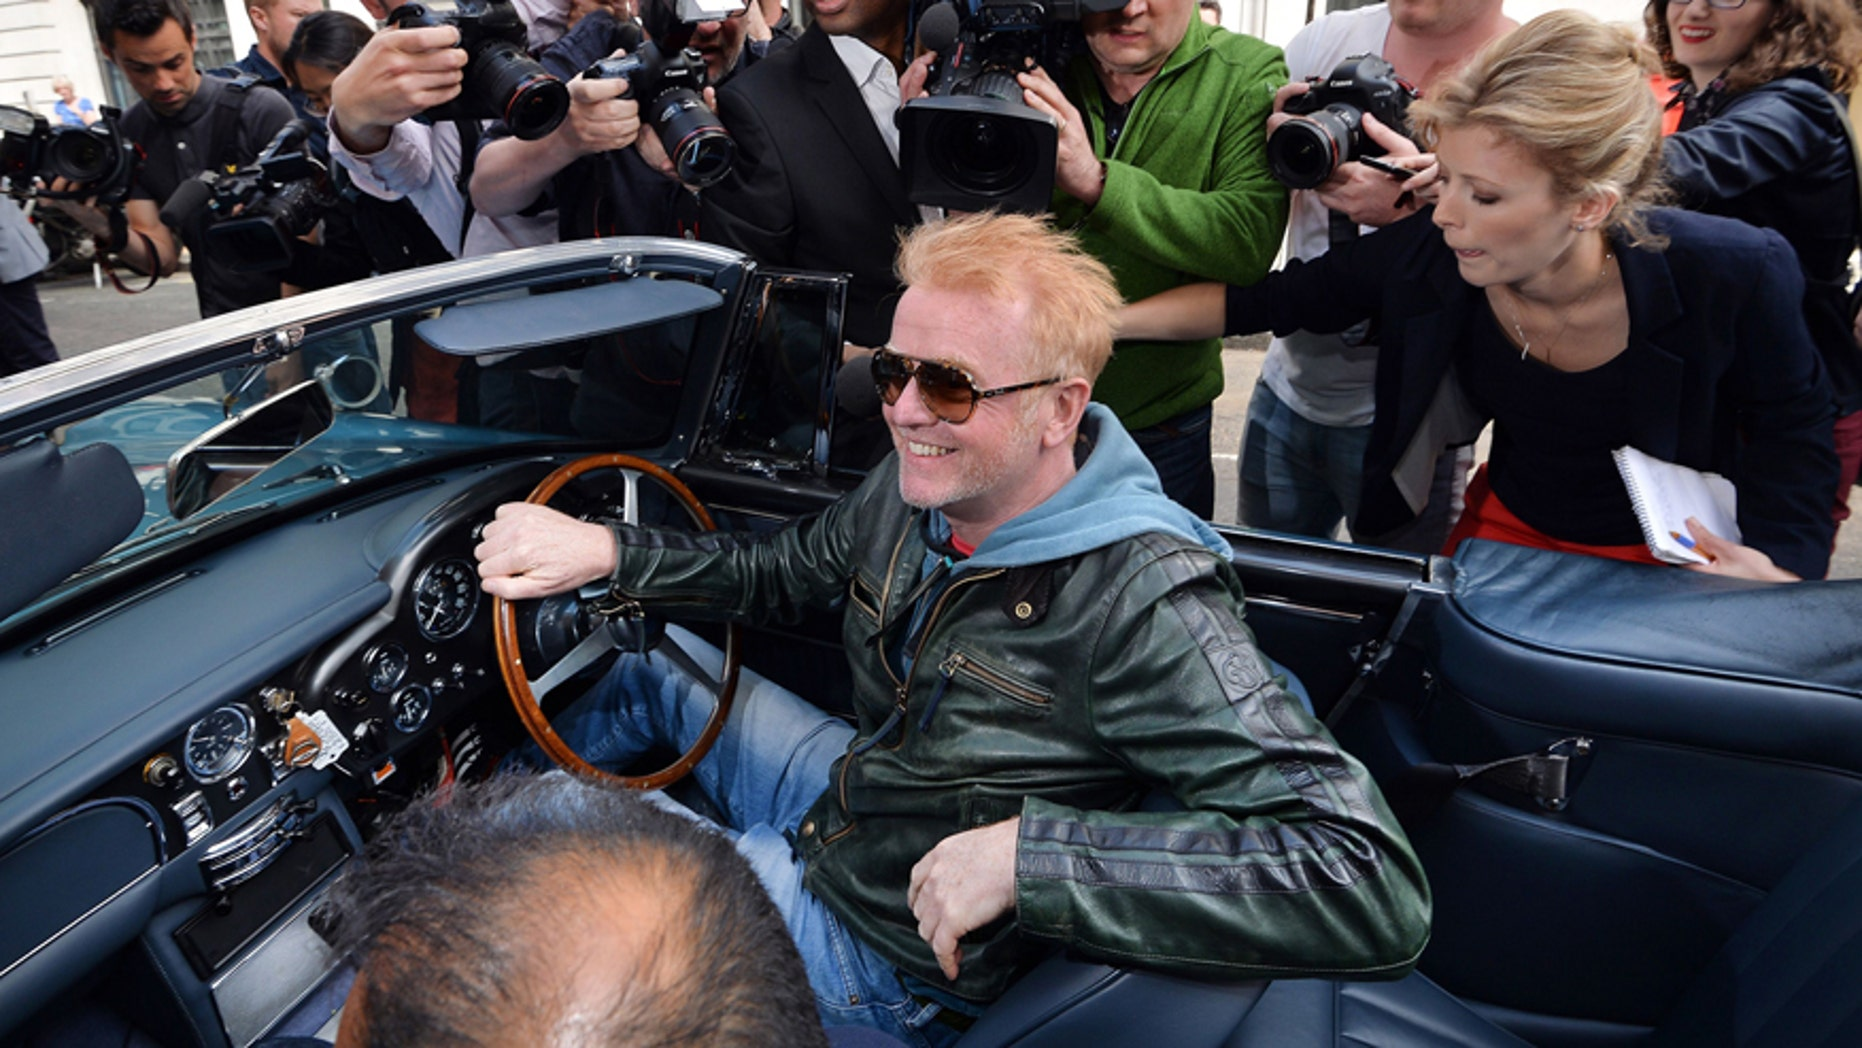 """Media flock around radio and TV personality, Chris Evans as he leaves the BBC Radio studios in London, Wednesday June 17, 2015, driving his vintage Aston Martin car, after he was announced as the new Top Gear presenter.  The BBC TV company says its top automotive TV show """"Top Gear"""" will return to the airwaves with Chris Evans as the new host, replacing scandal-tainted Jeremy Clarkson, who was sacked for punching one of the show's producers. (John Stillwell  / PA via AP) UNITED KINGDOM OUT - NO SALES - NO ARCHIVES"""